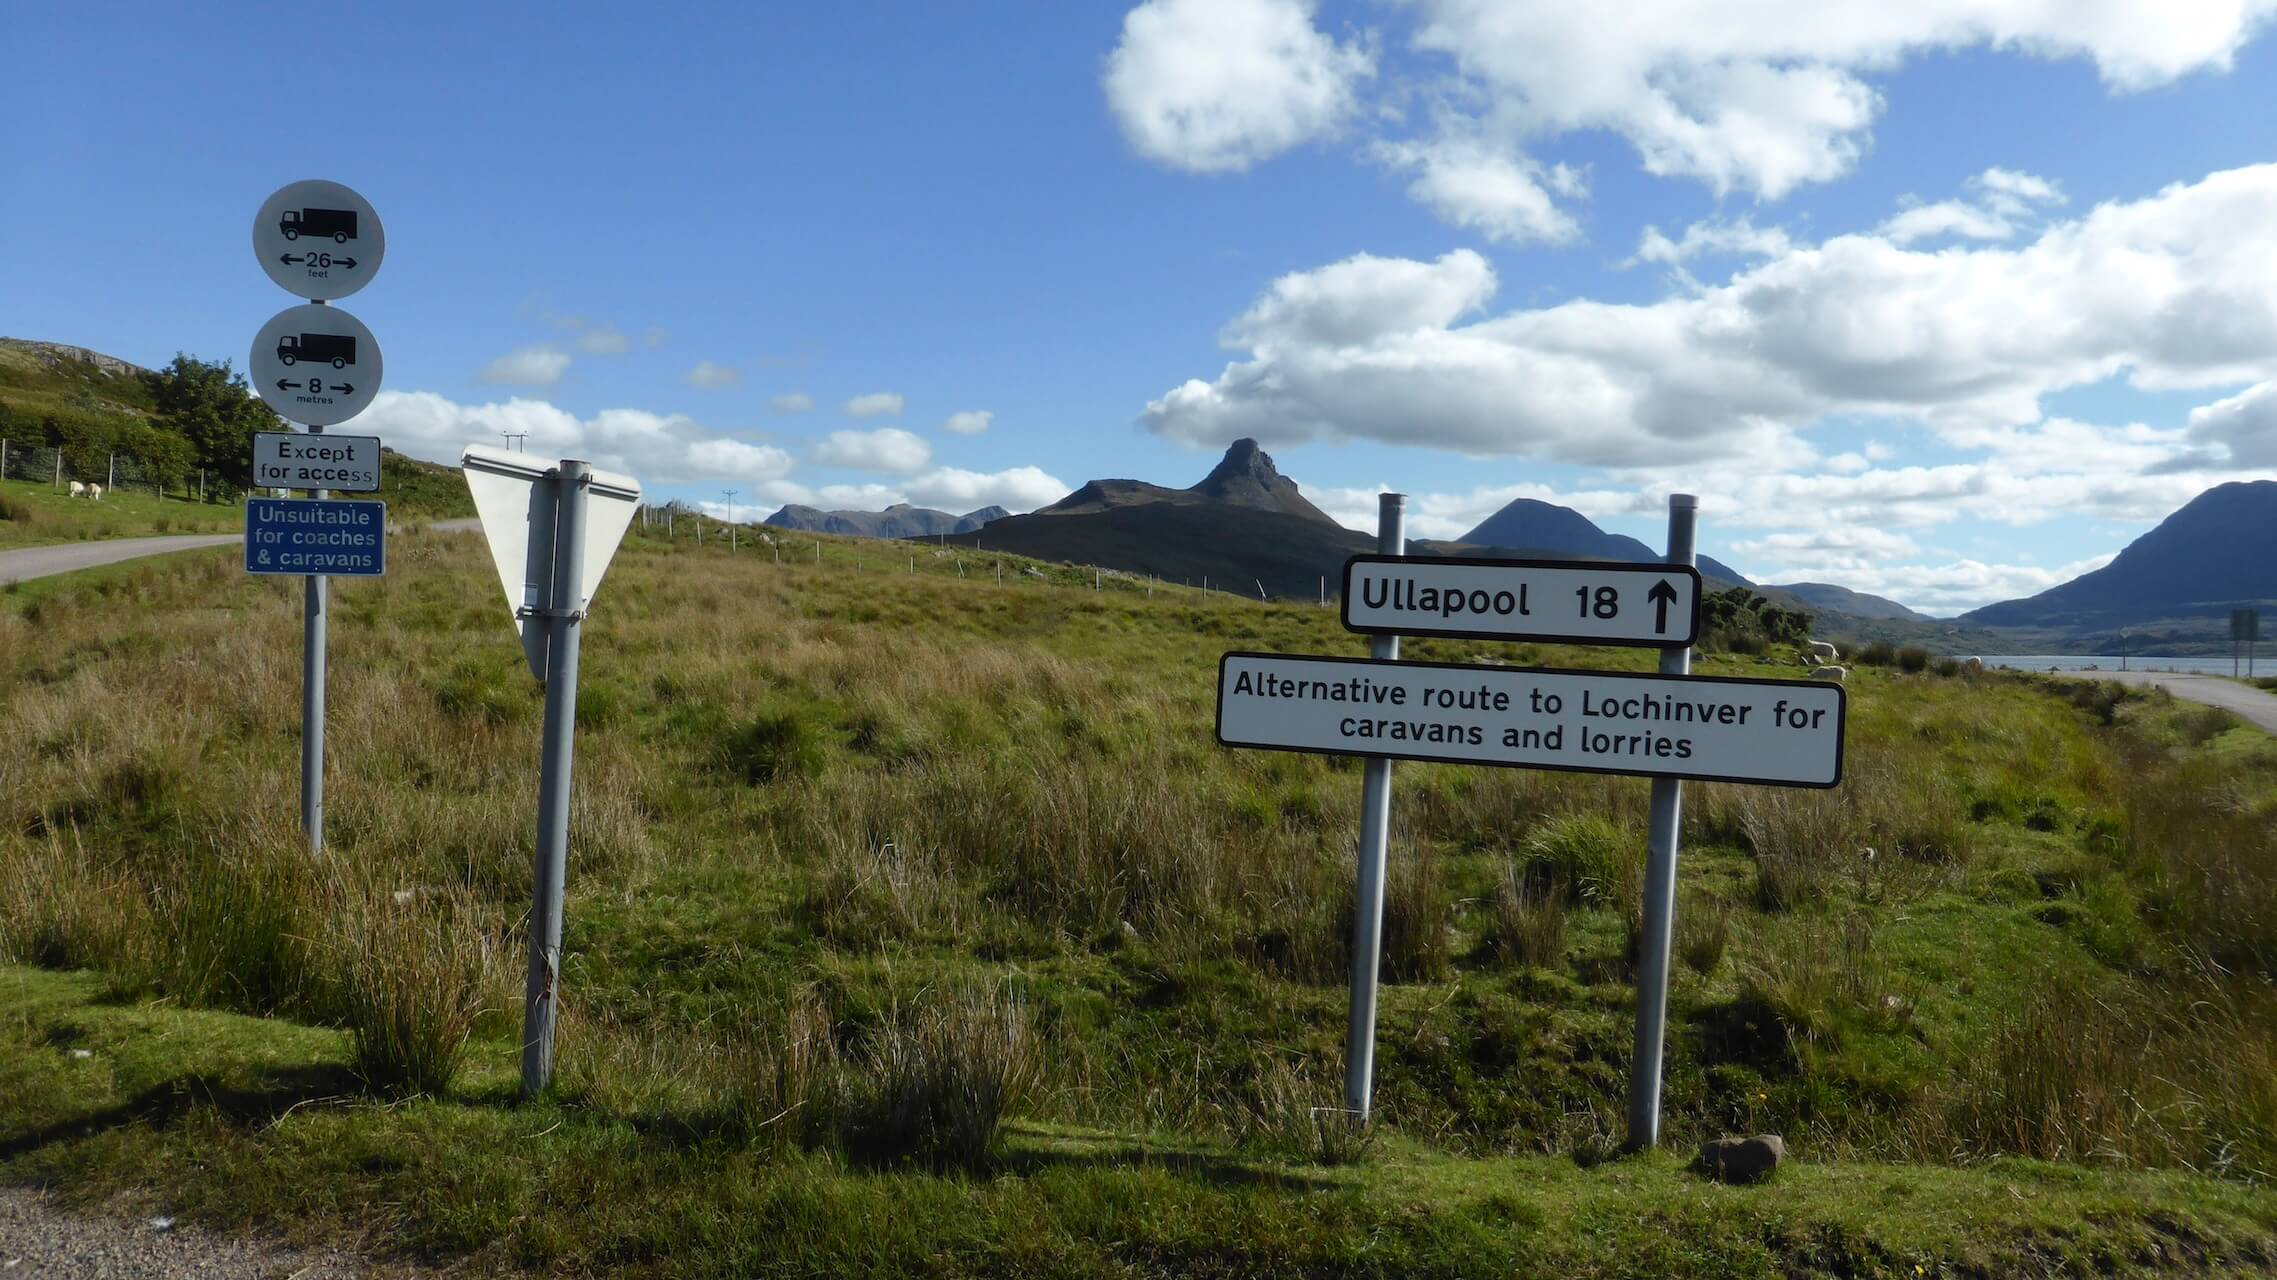 Signpost for Ullapool with Stac Pollaidh in the background